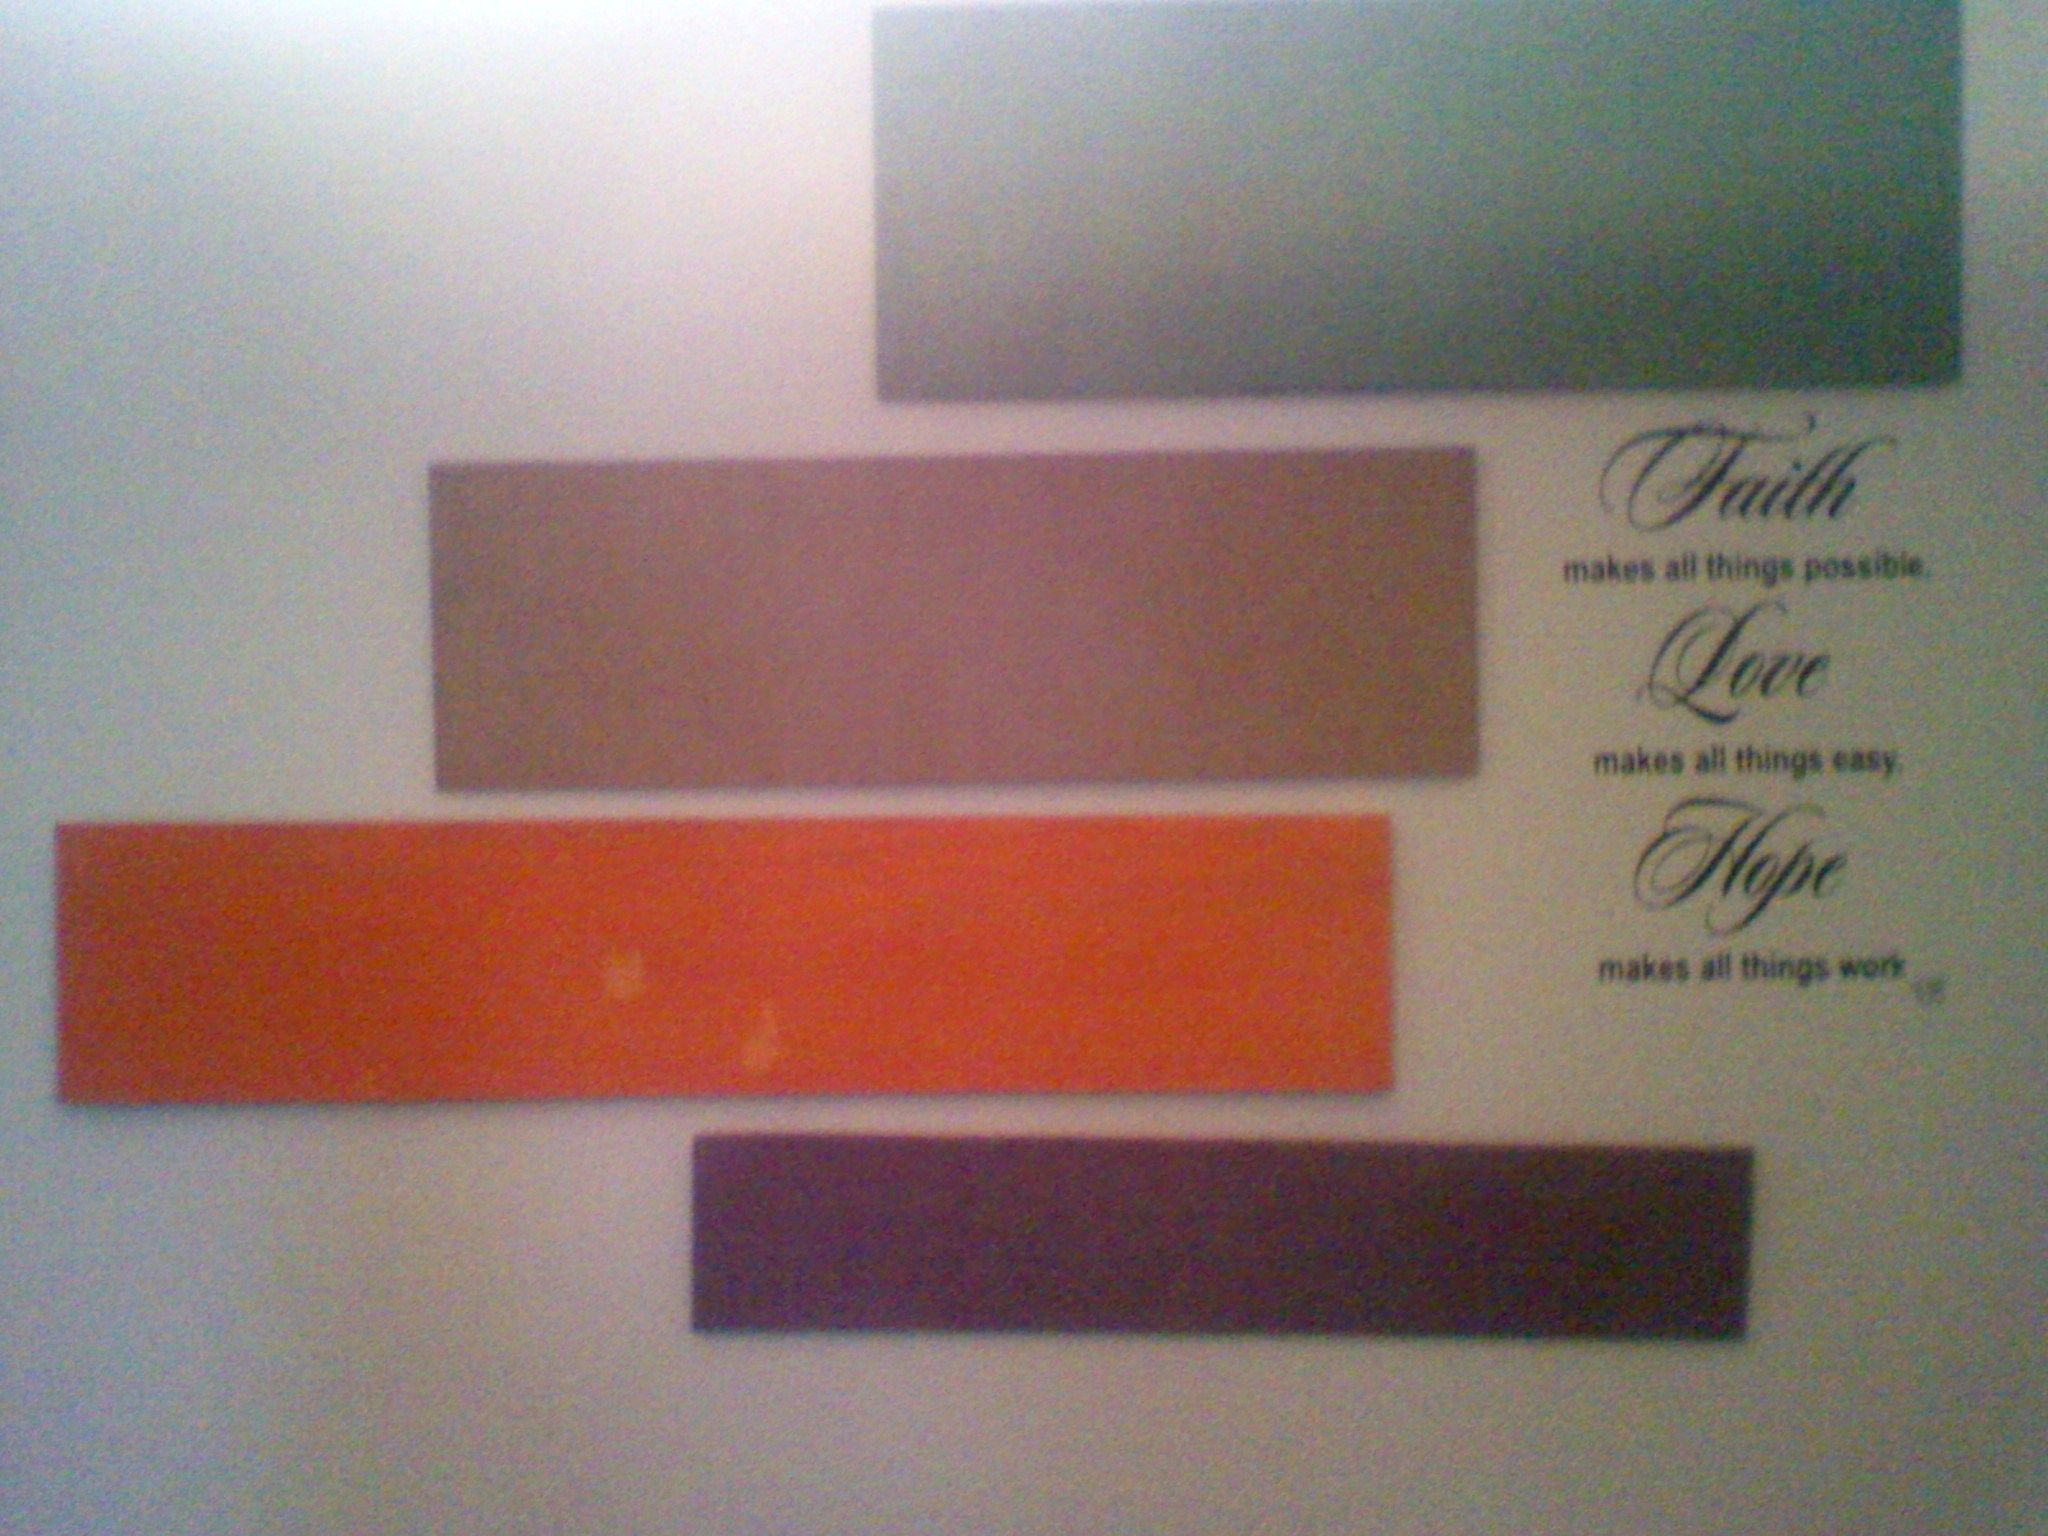 Wooden wall art lowes gives you wood that has been returned or cut